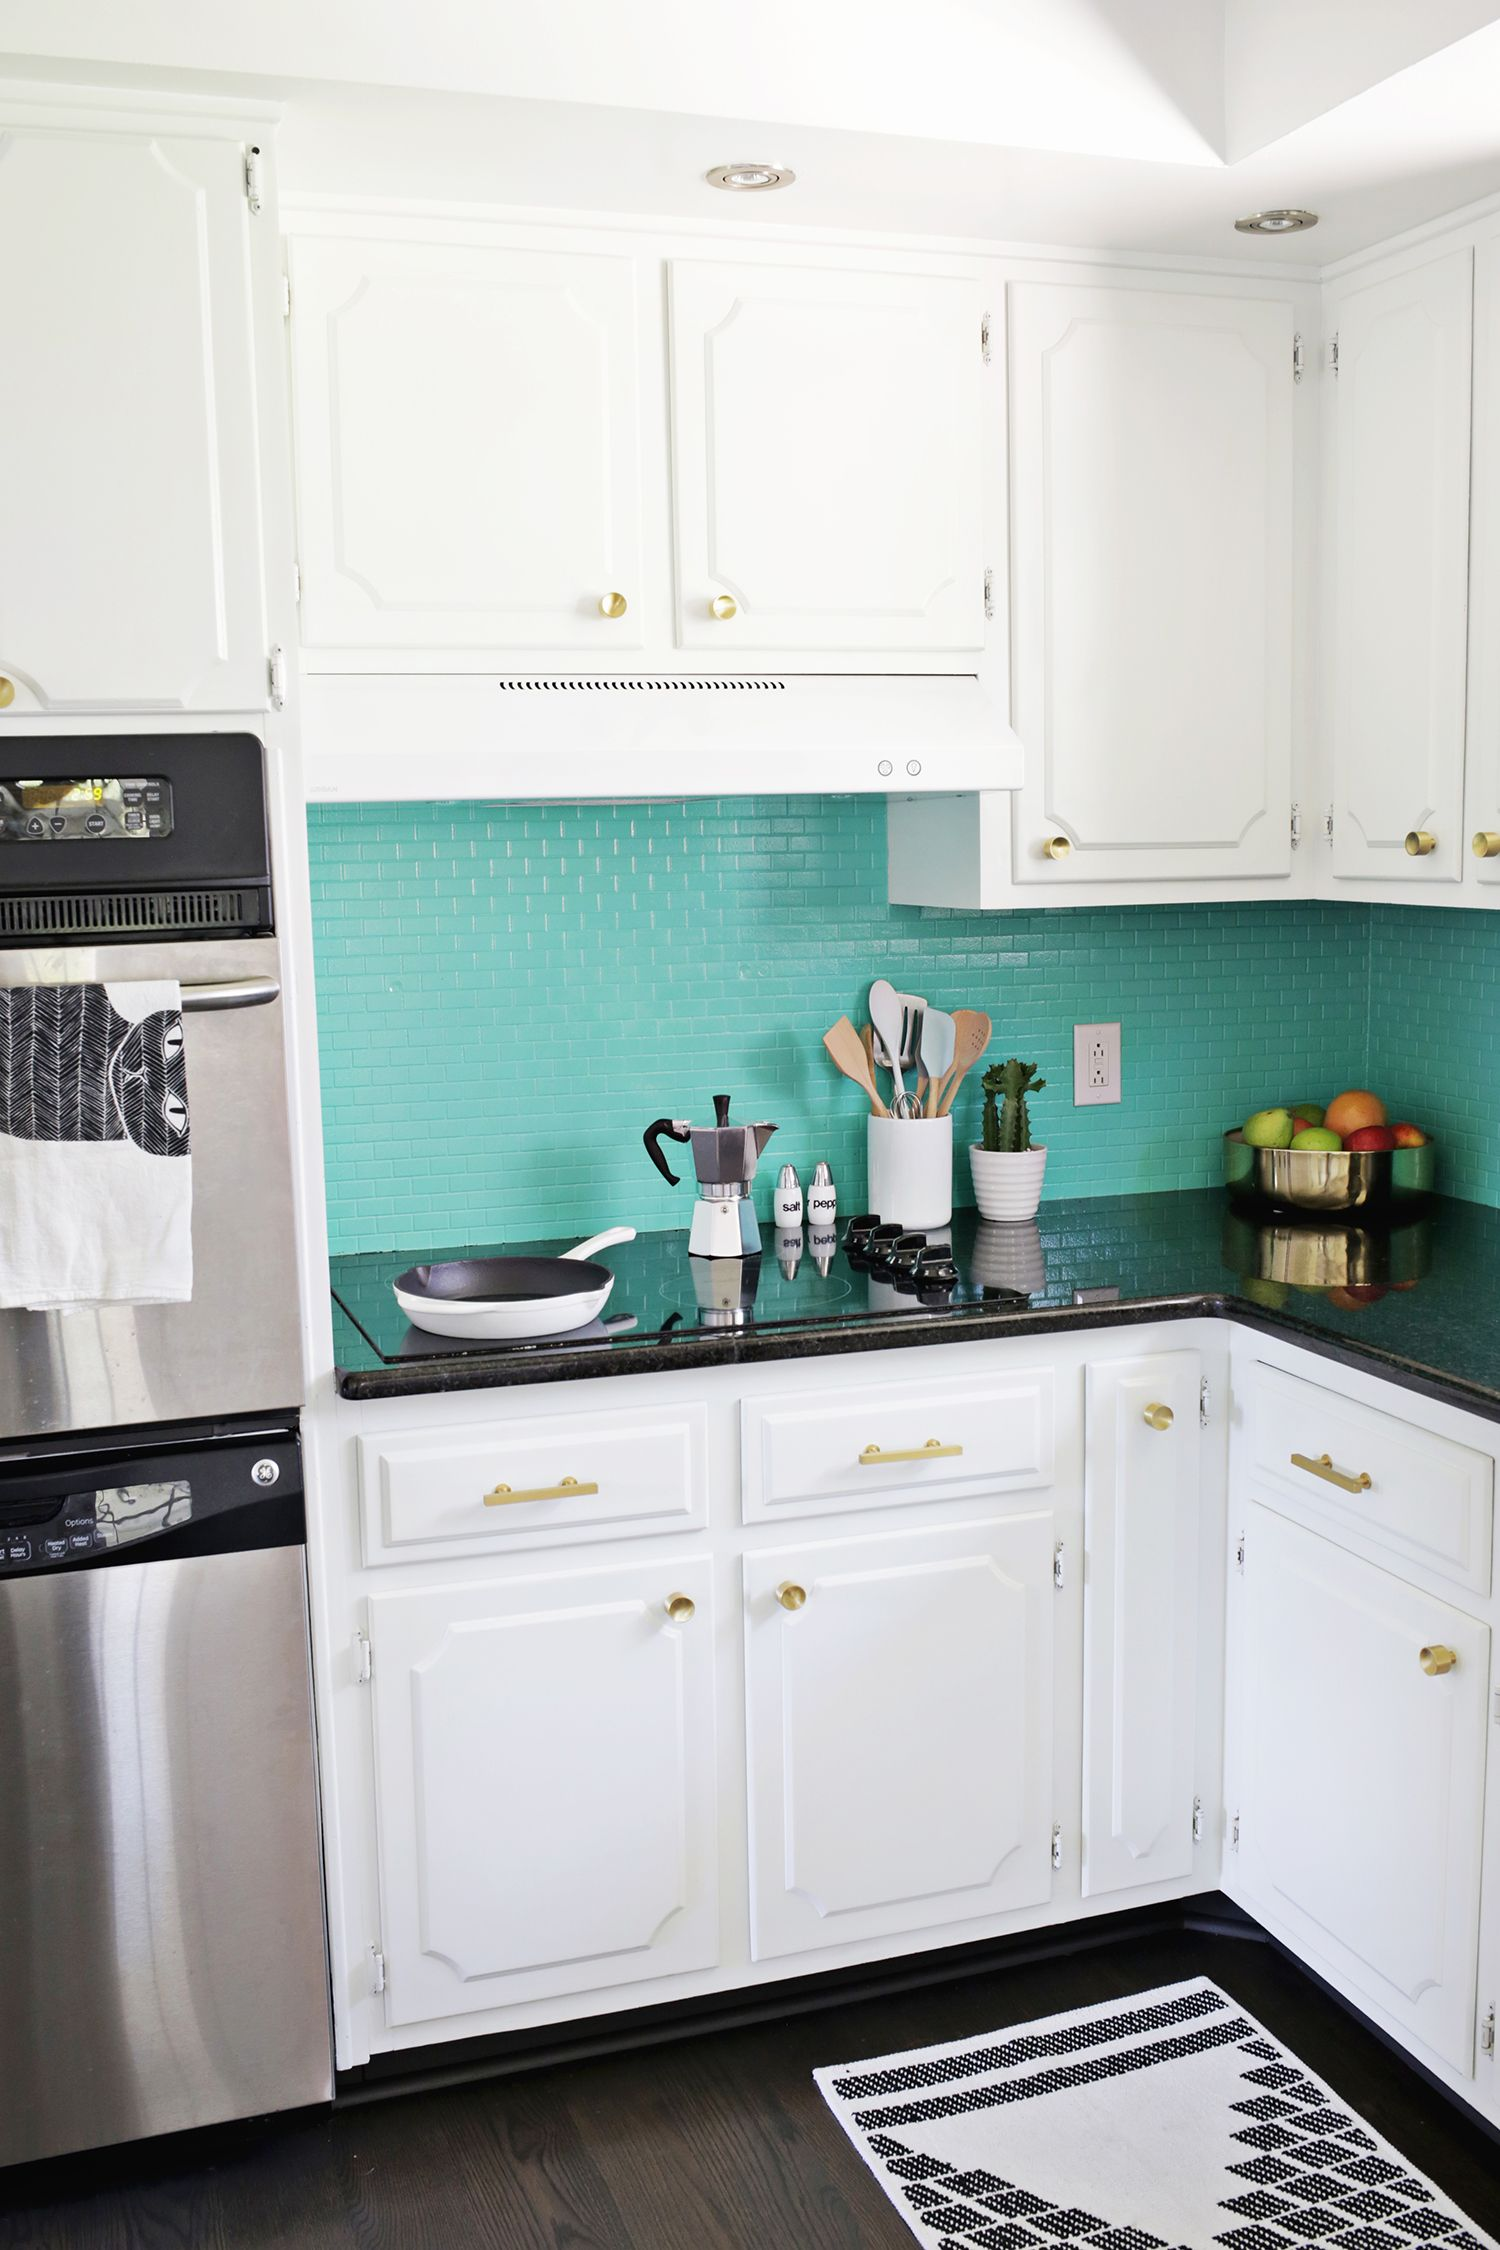 Laura\'s kitchen before and after (click through to see more!) | HOME ...